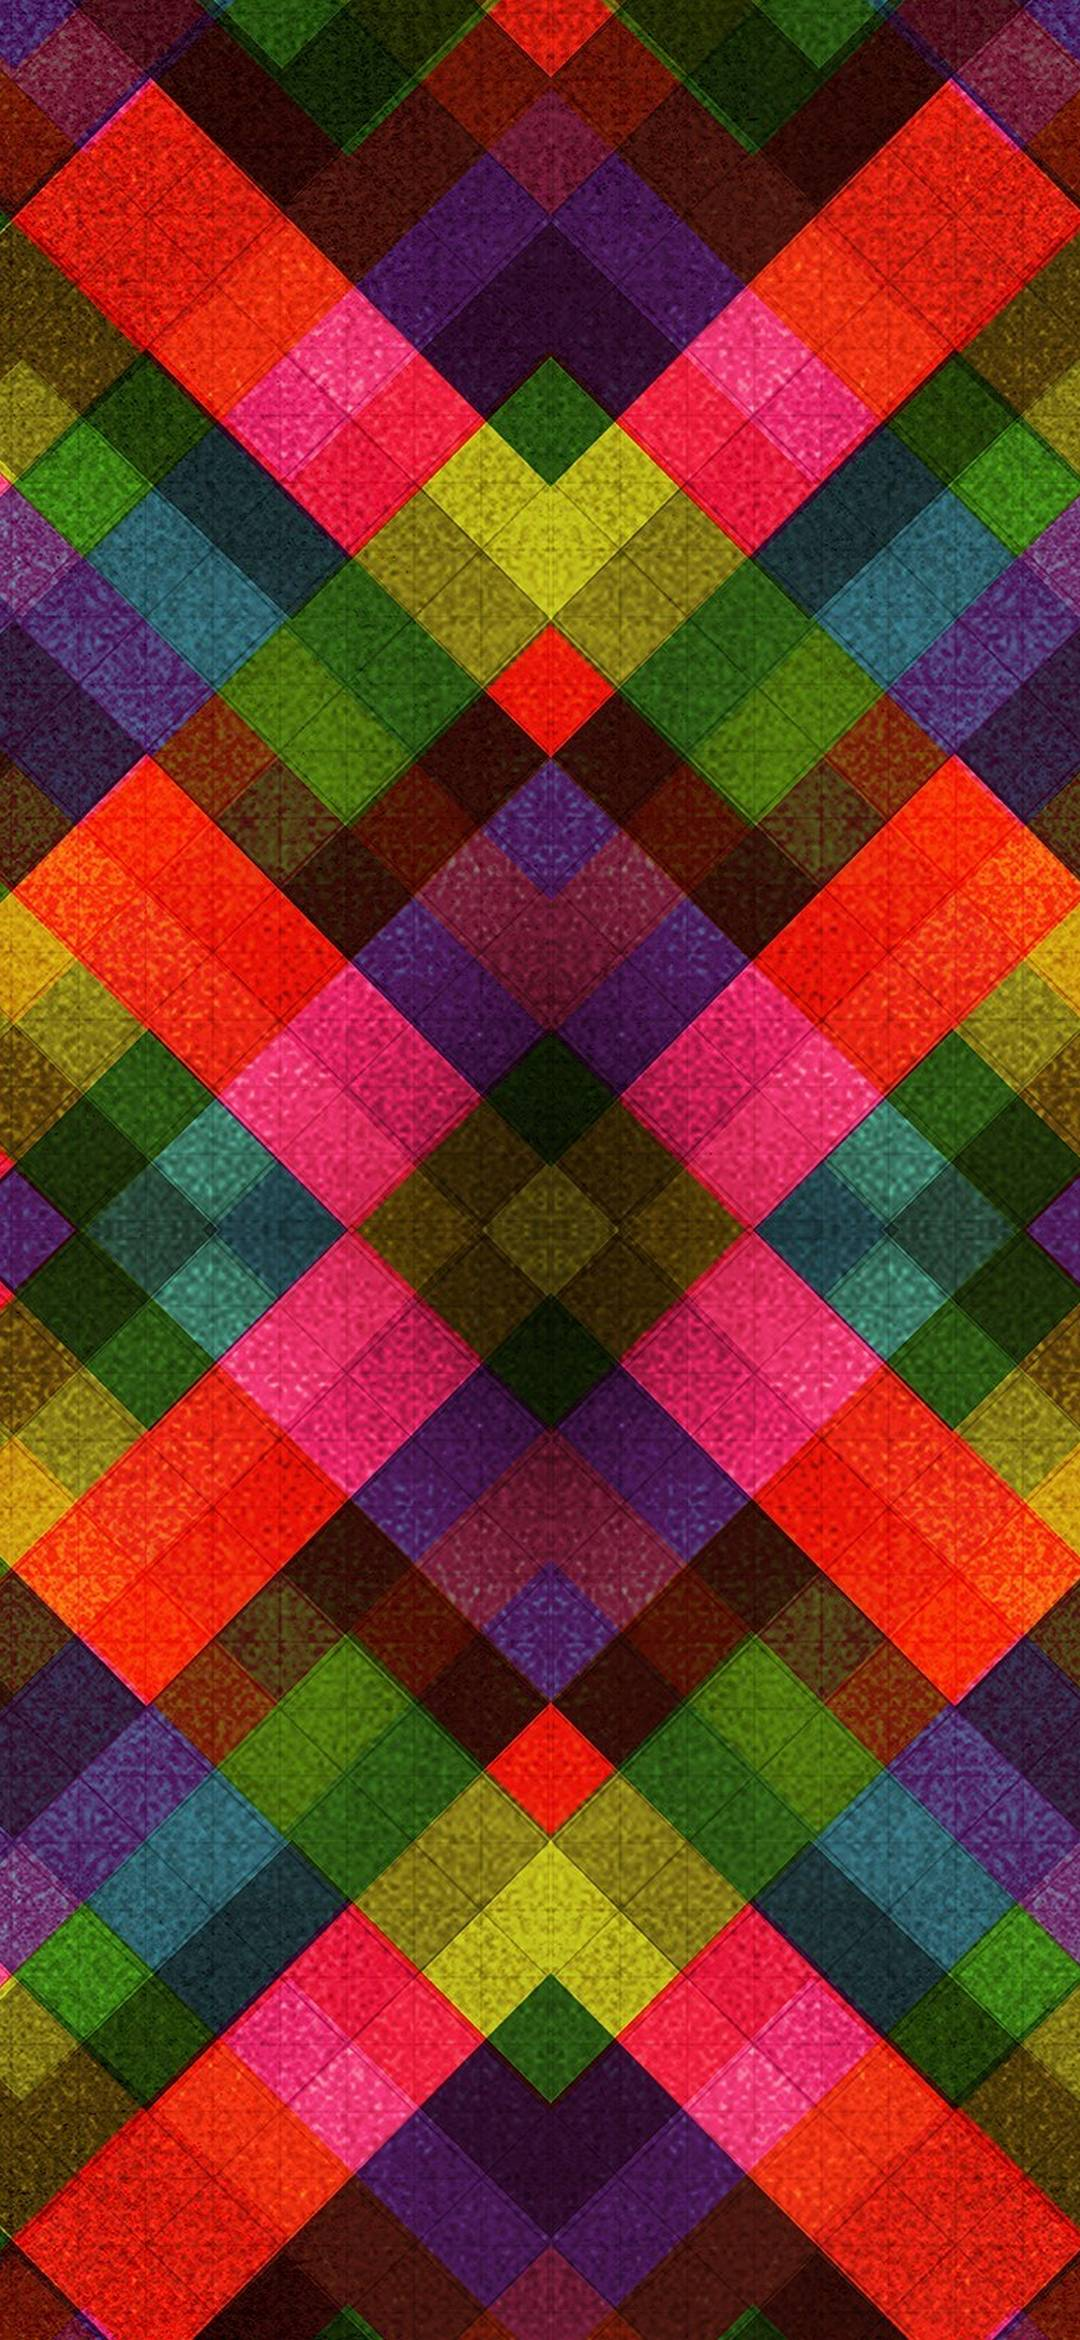 Abstract Multicolor Patterns Retro - [1080x2340]